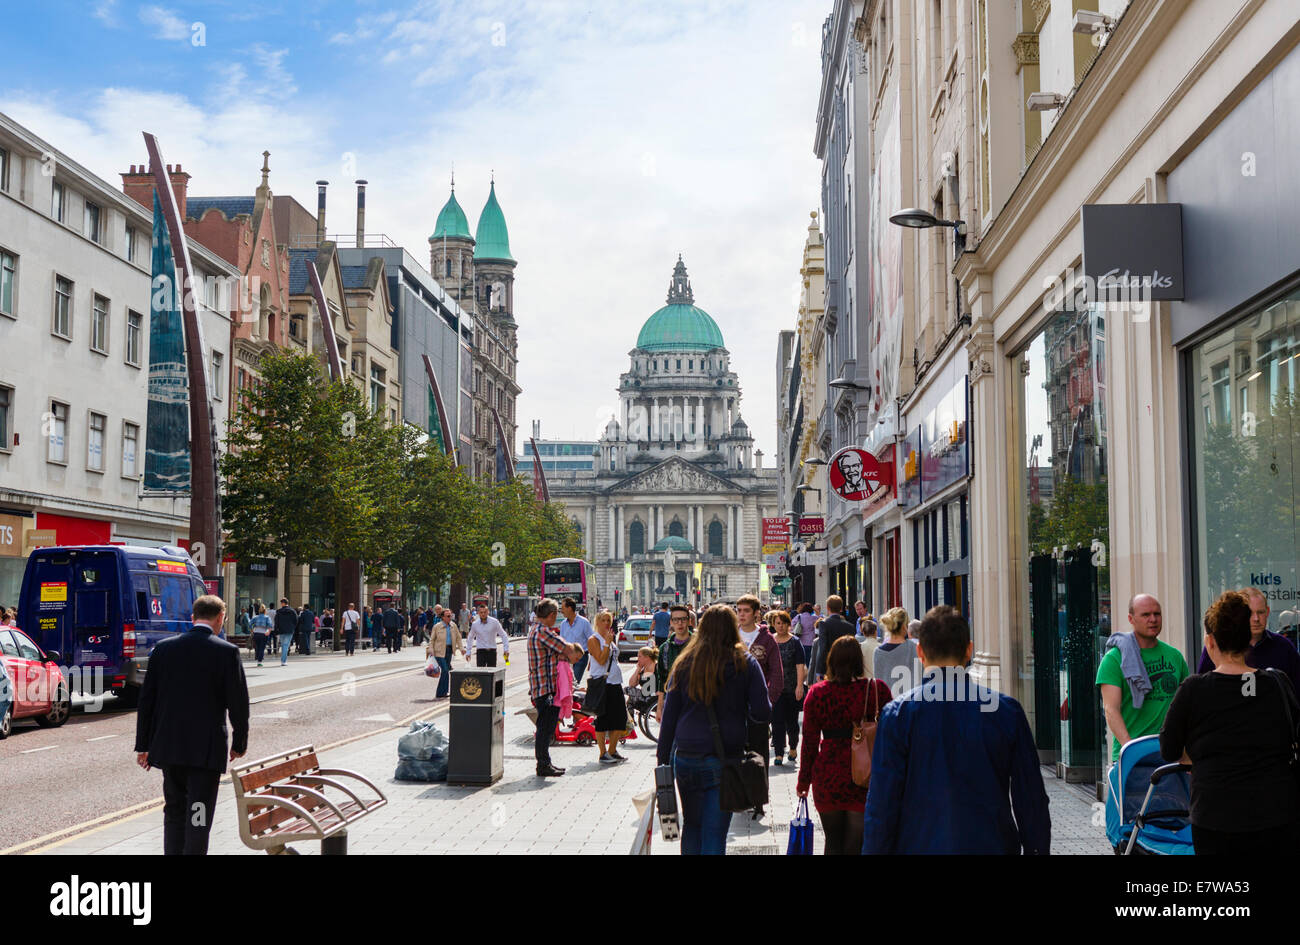 Donegall Place looking towards City Hall, Belfast, Northern Ireland, UK - Stock Image